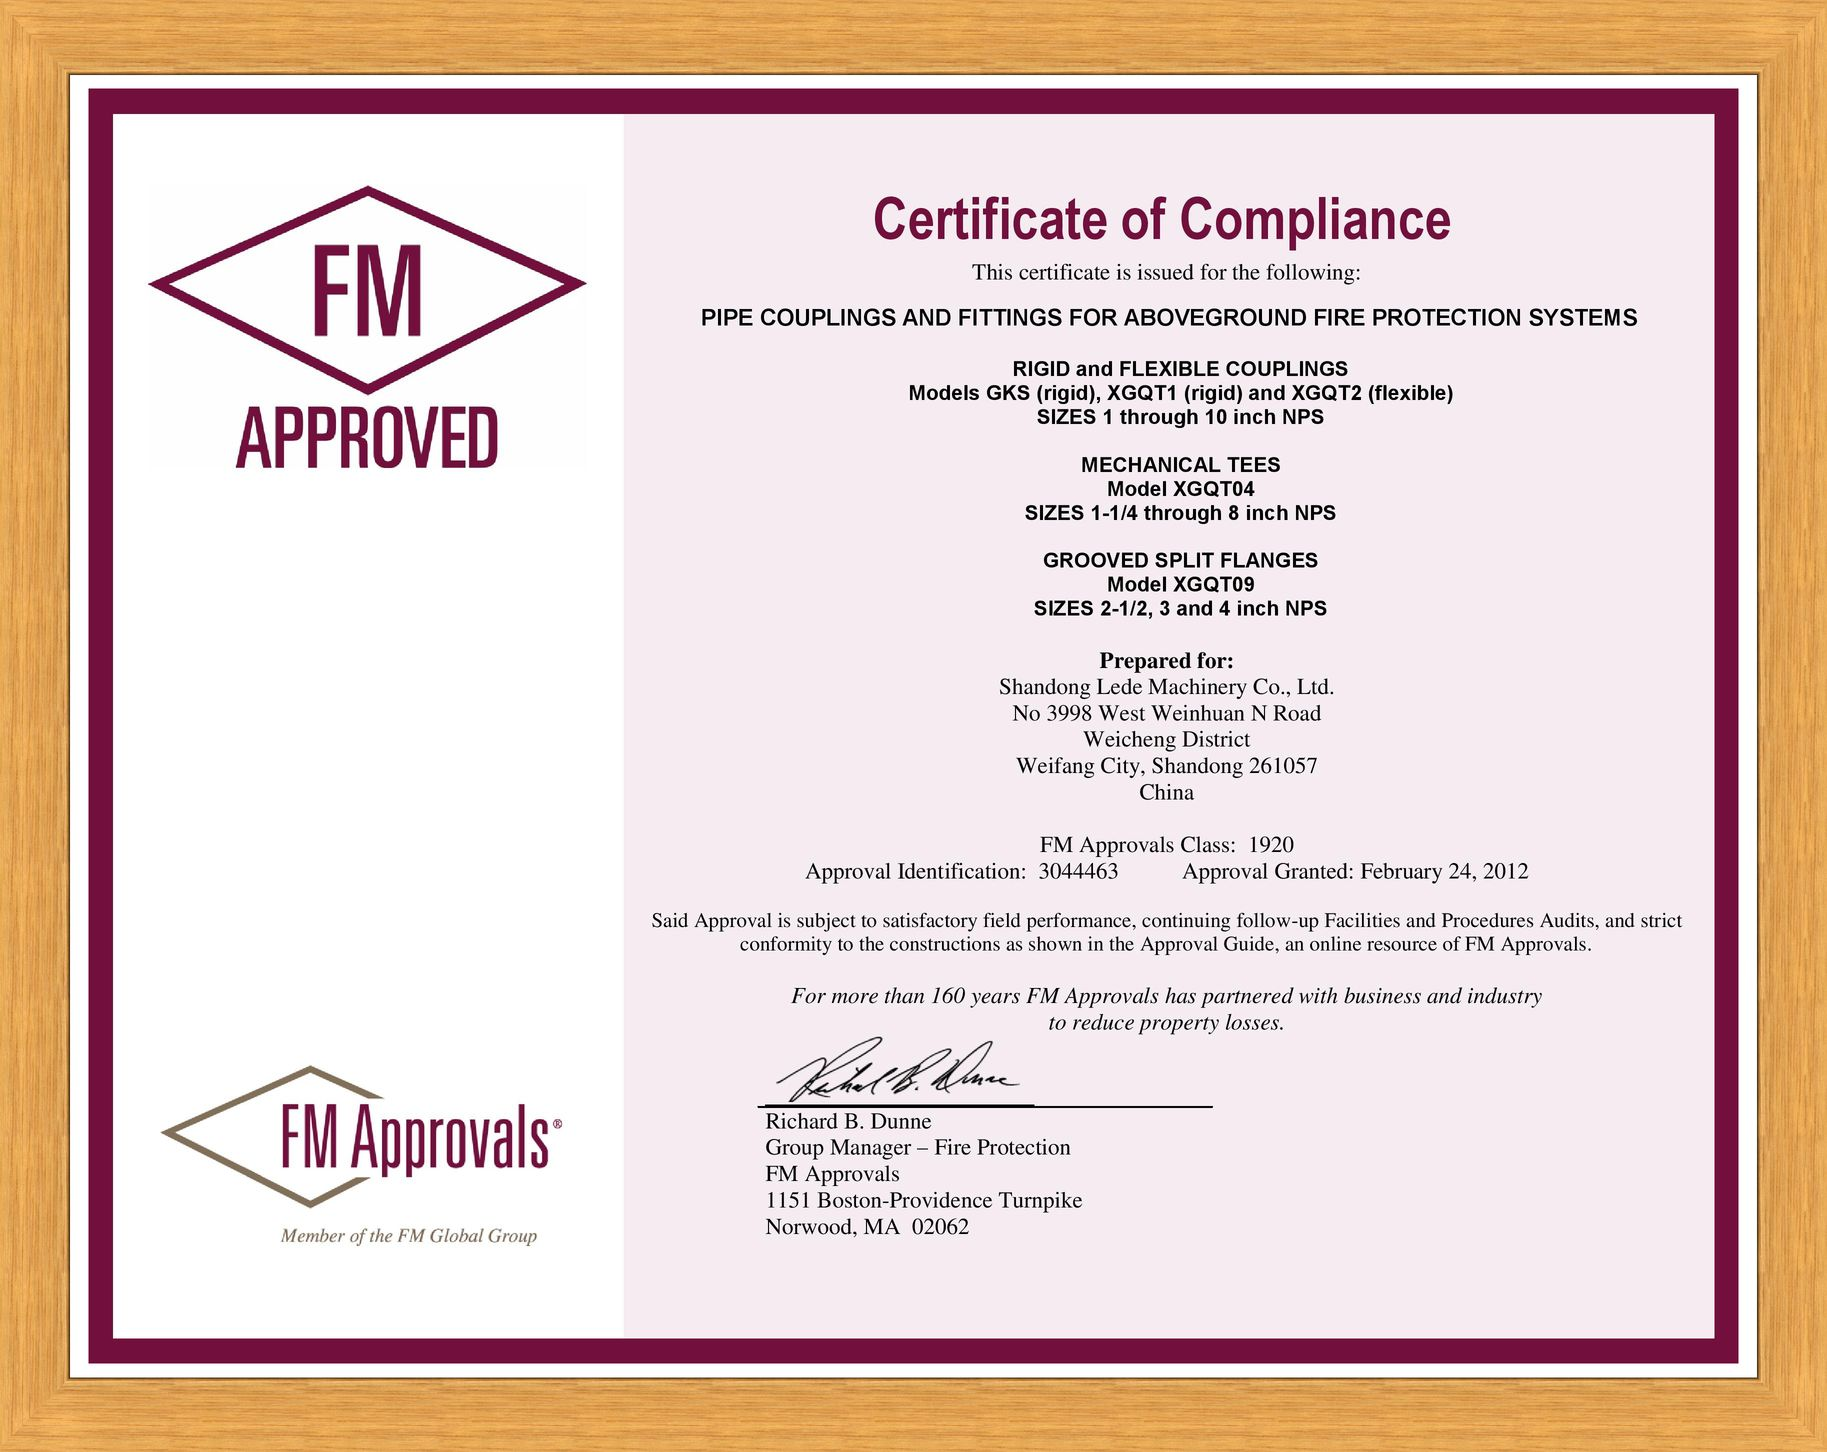 FM Approved sertificate (Couplings, Mechanical tees, Flanges), 2012